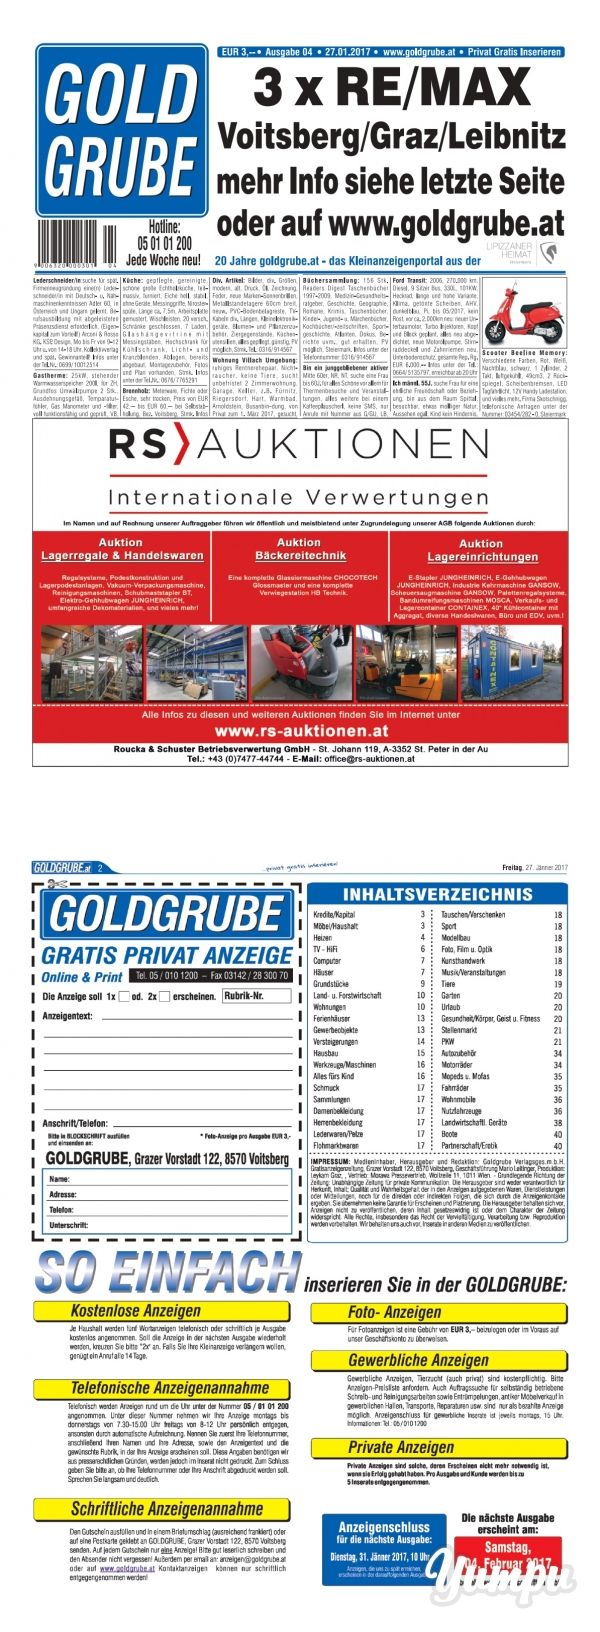 Goldgrube Ausgabe 4/17 - Magazine with 48 pages: Privat-Gratis Inserieren